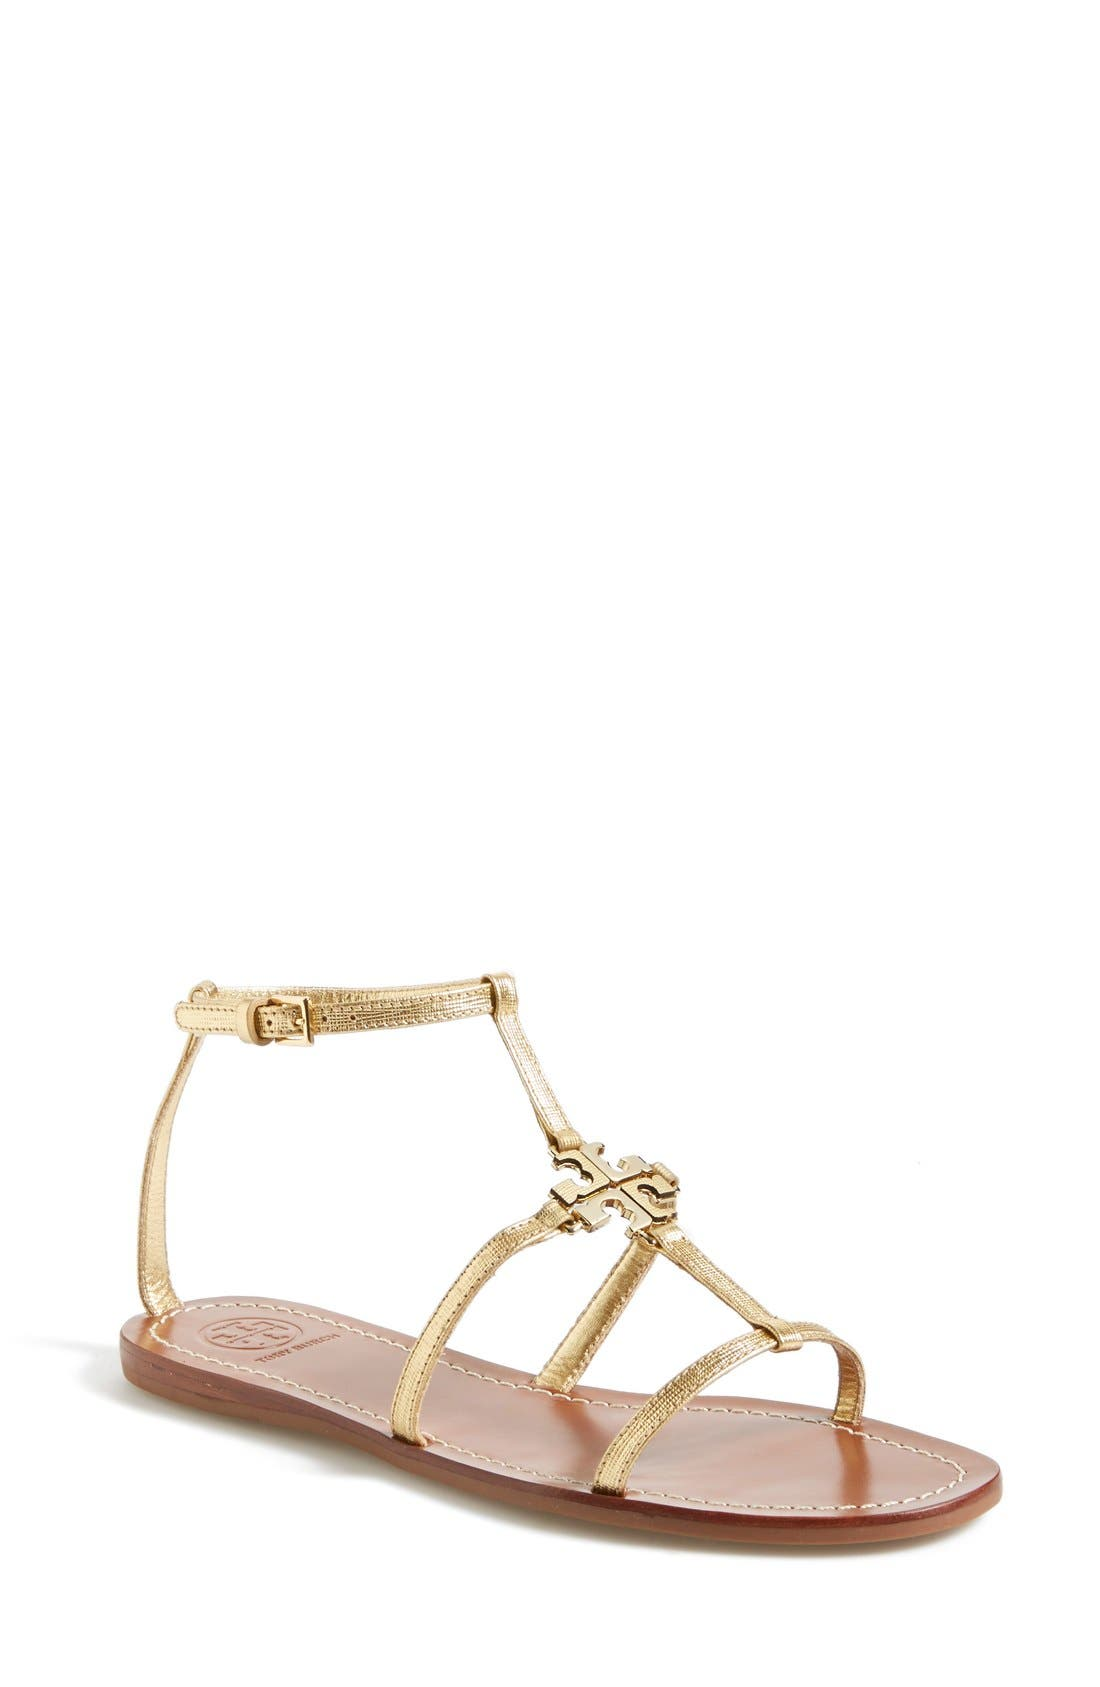 Main Image - Tory Burch 'Lowell' Leather Sandal (Women)